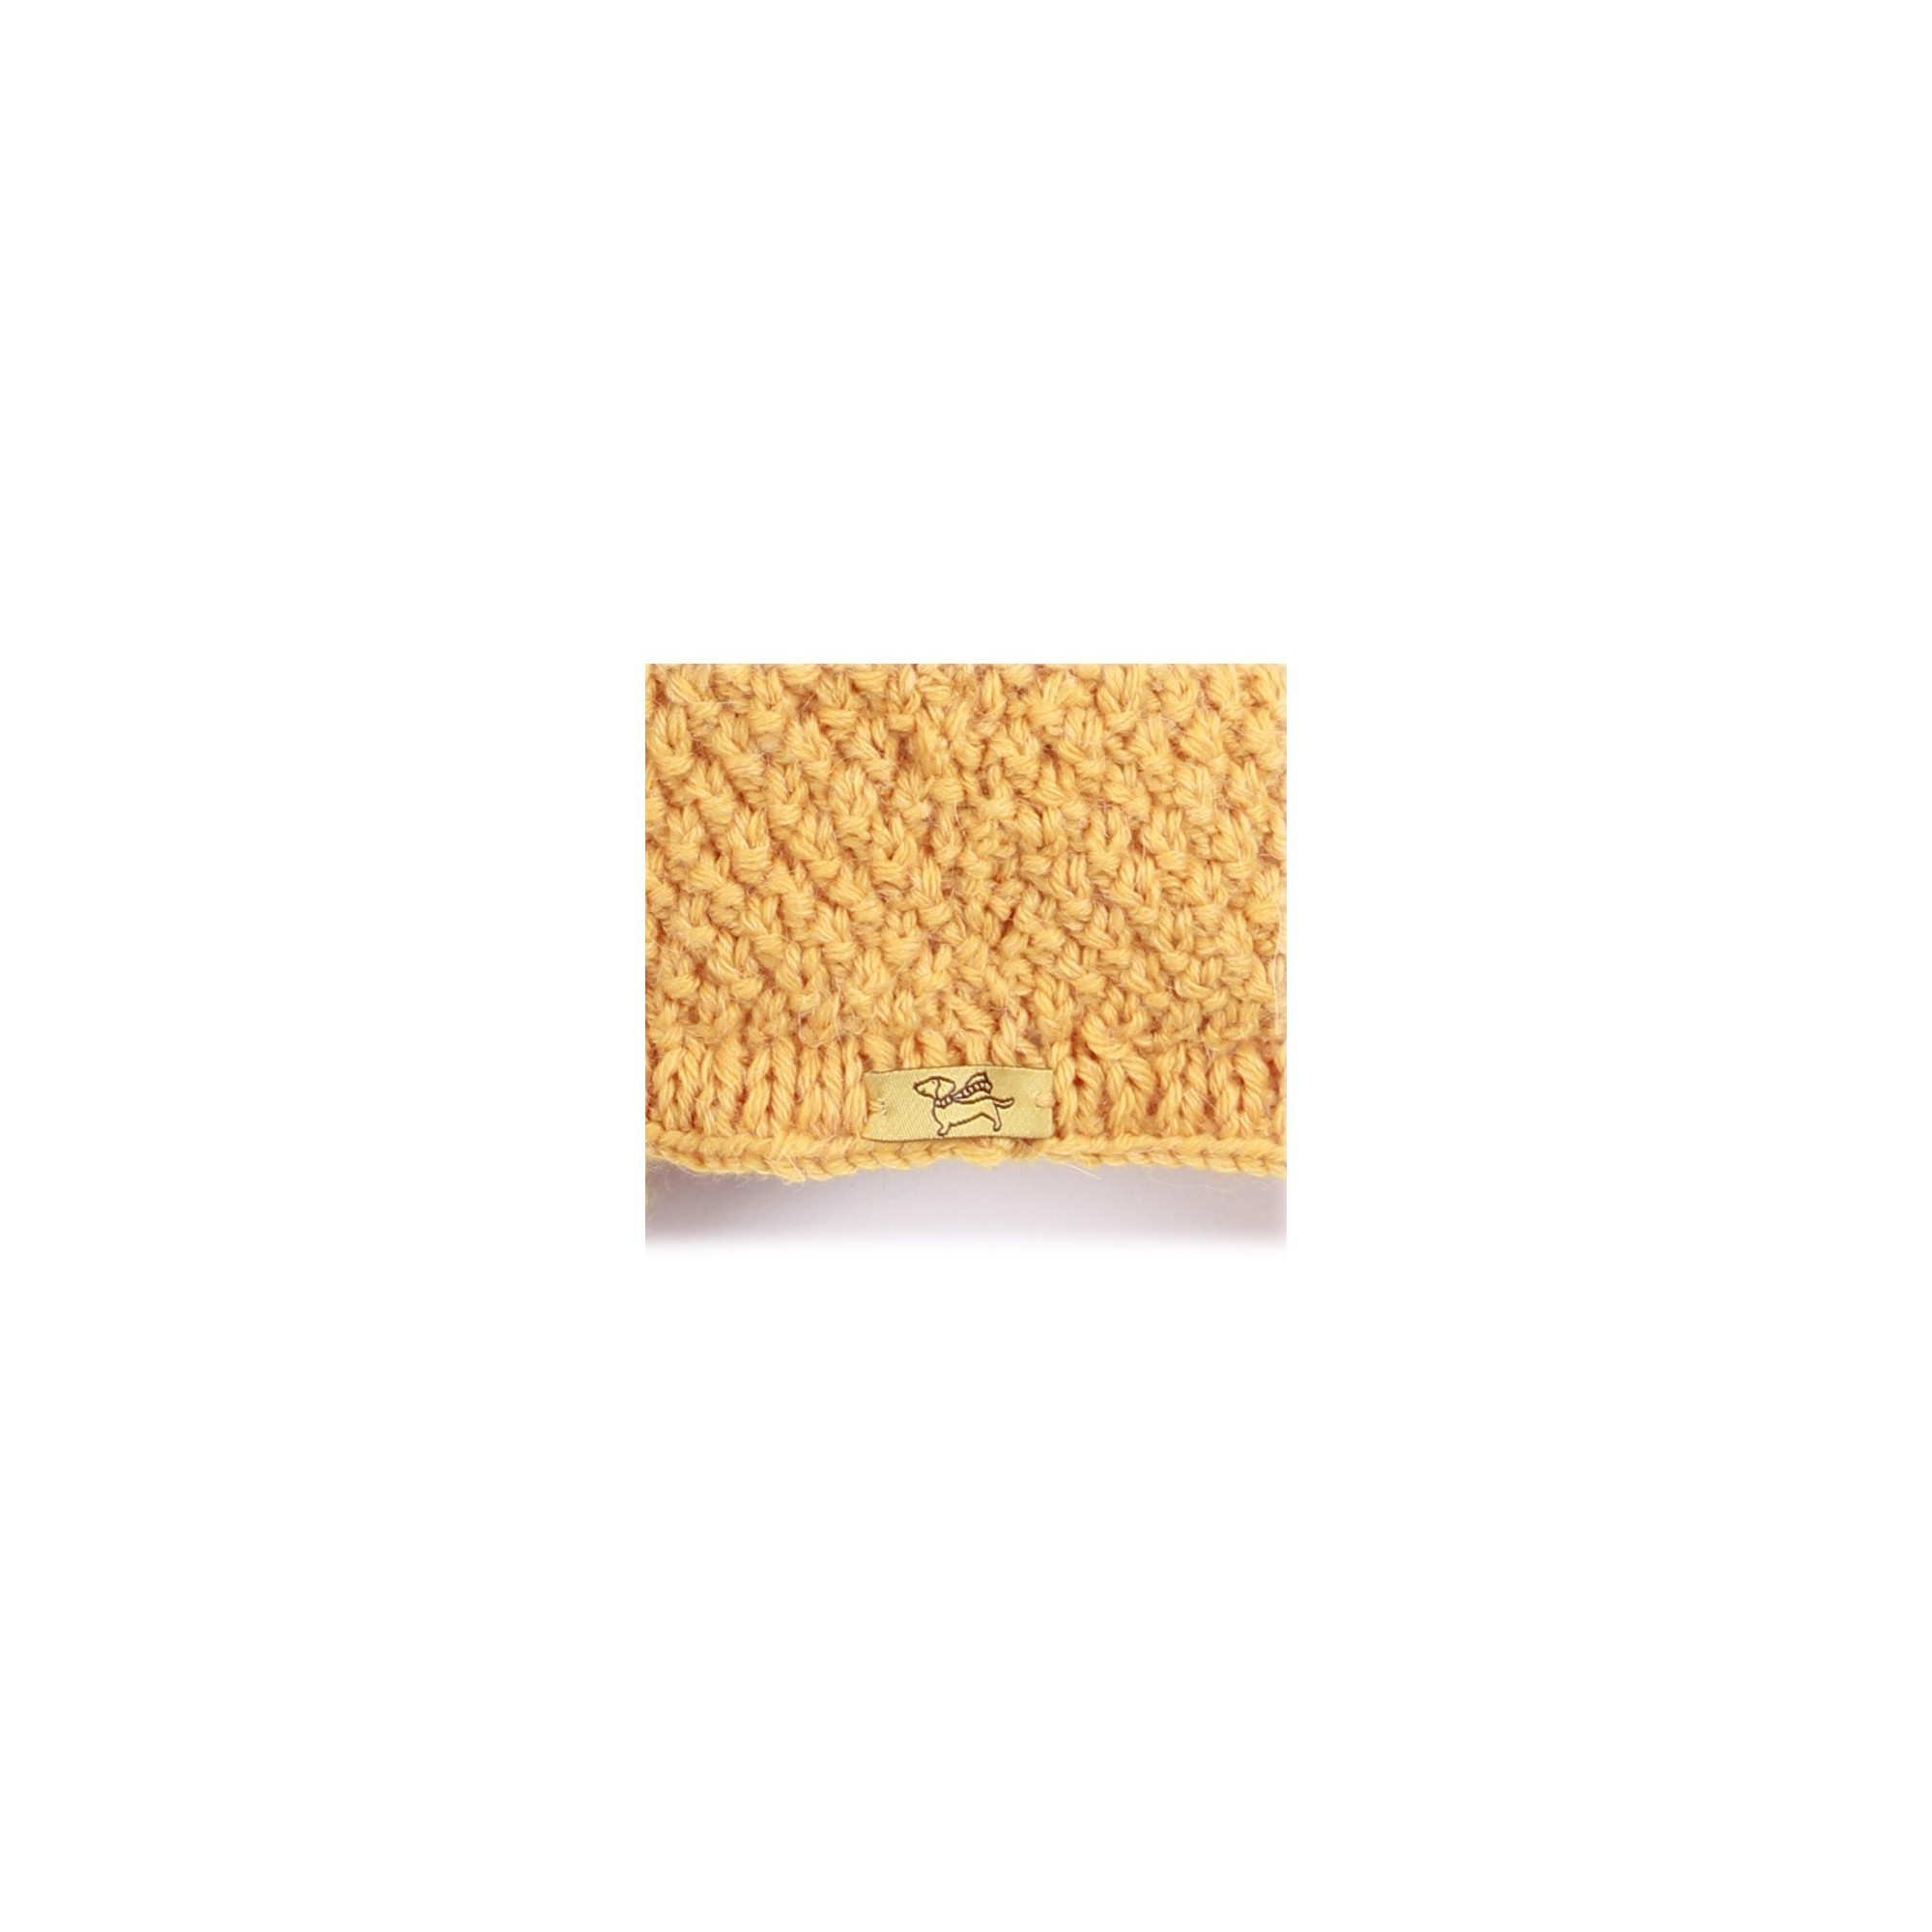 Baby peruvian cap knitted in moss stitch made from wool and alpaca - Yellow - Back